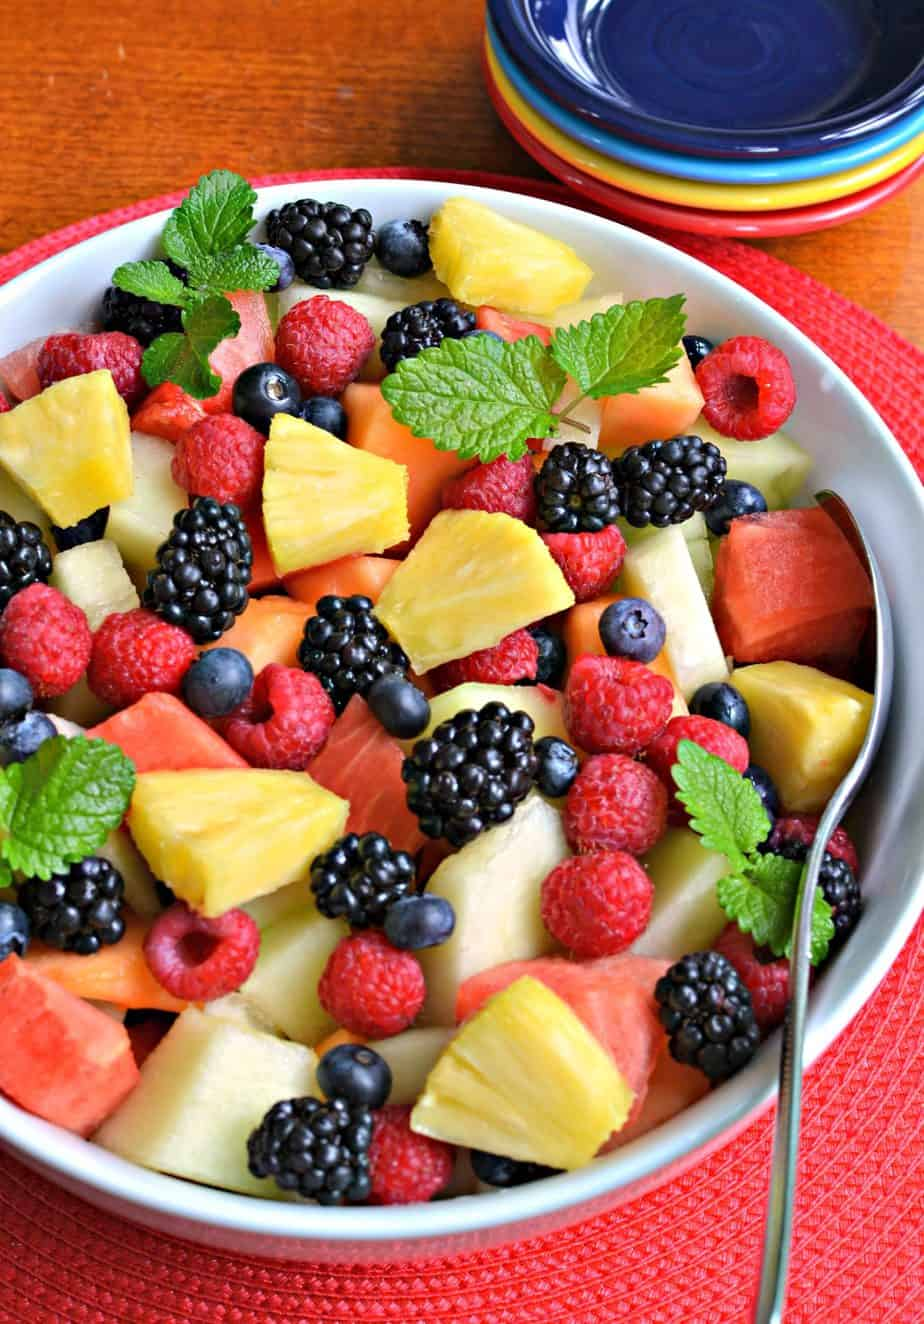 This colorful and refreshing summer fruit salad has all the best summer fruits.